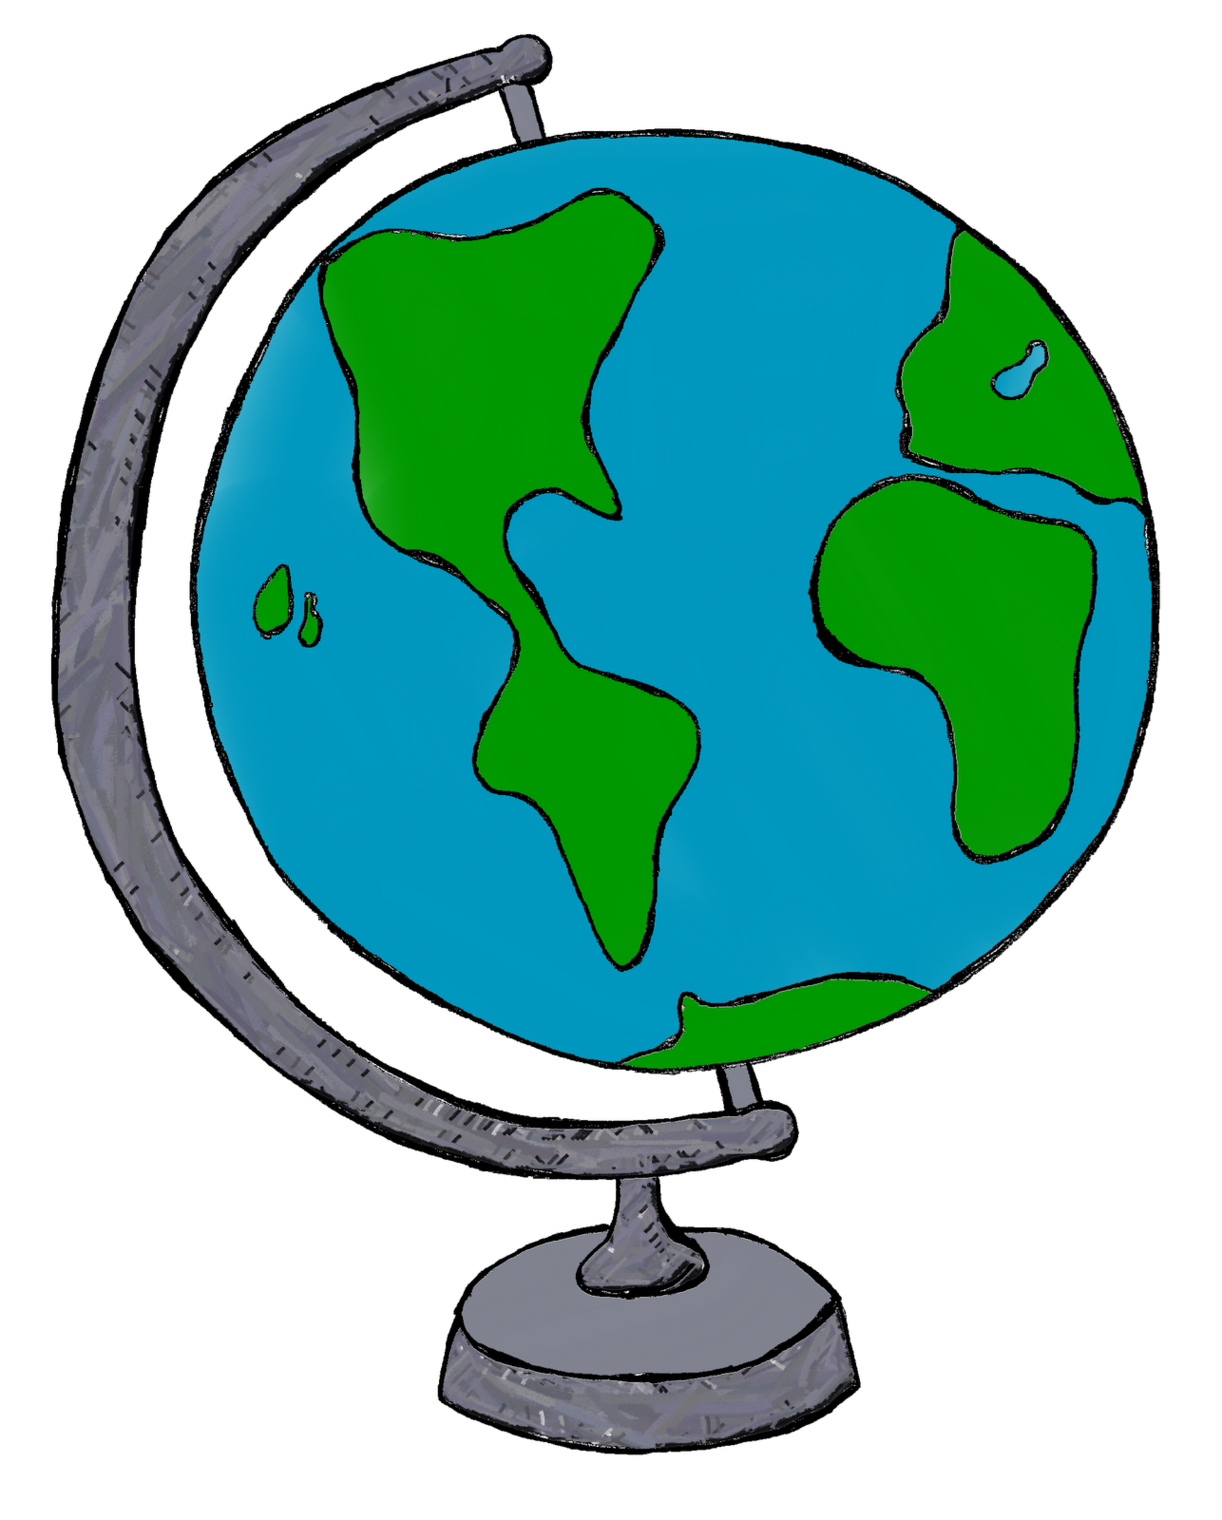 Planet earth Illustrations and Clip Art 184382 Planet